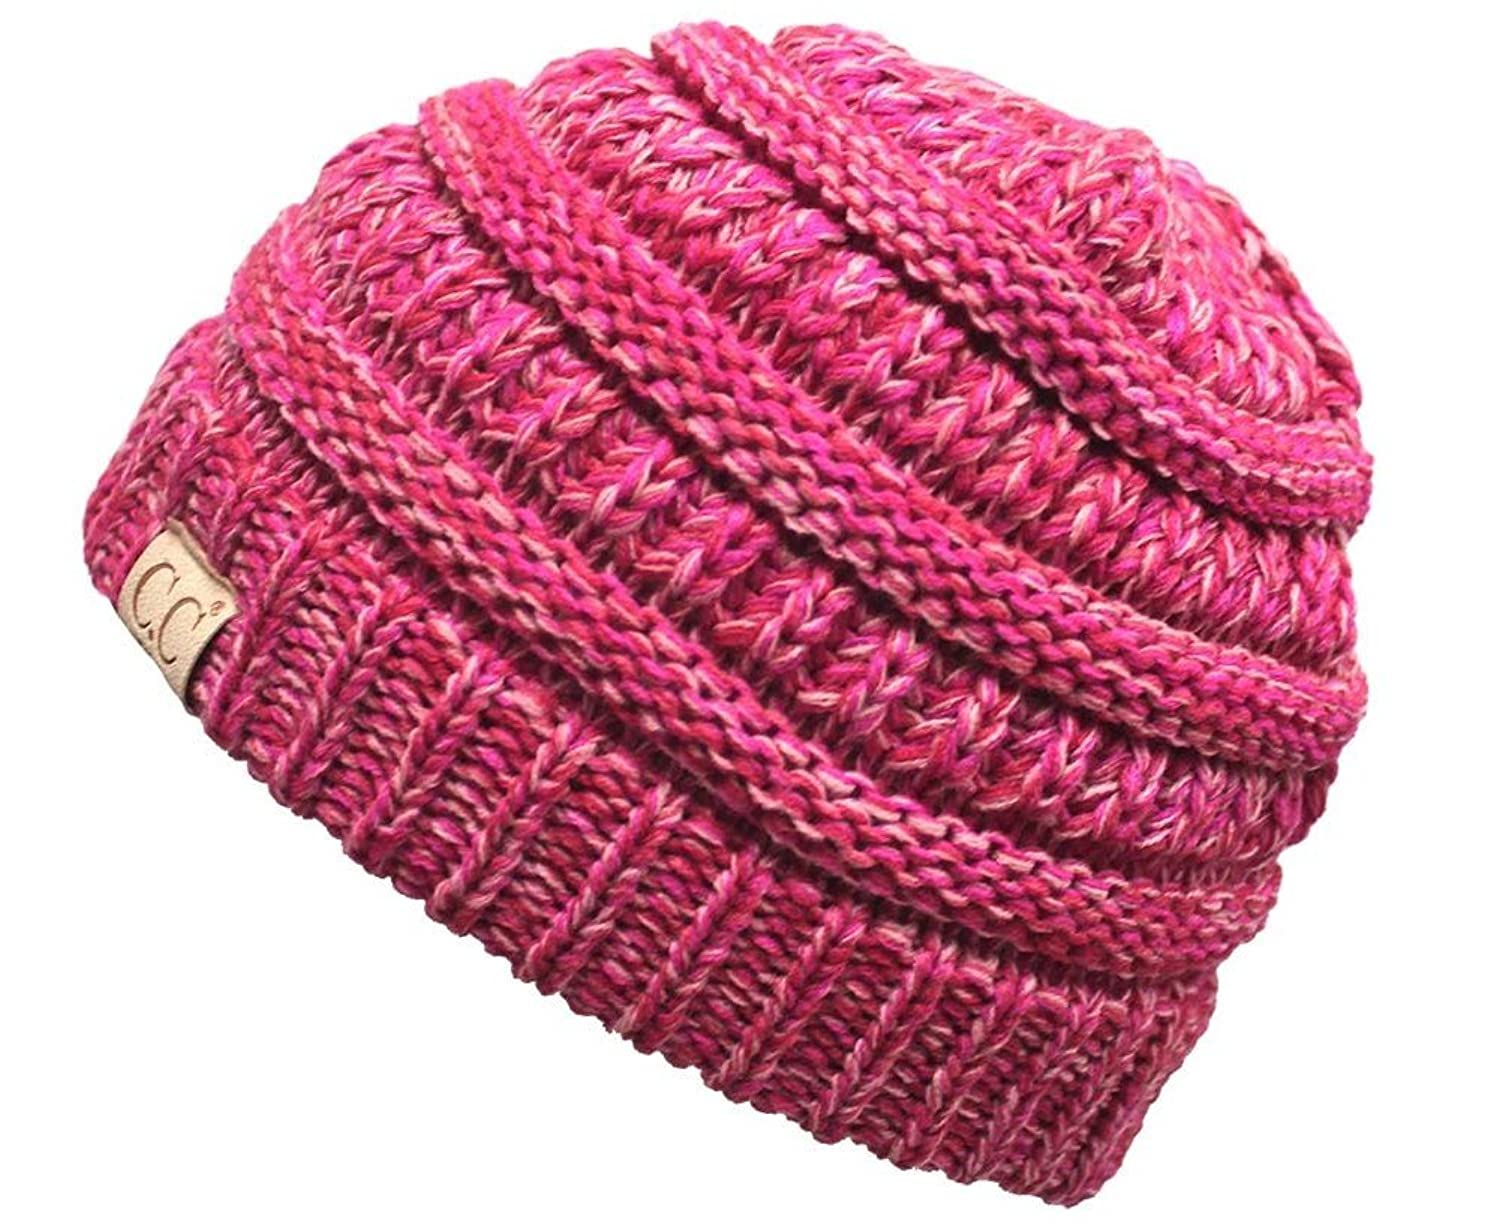 Funky Junque's CC Kids Baby Toddler Ribbed Knit Children's Winter Hat Beanie Cap